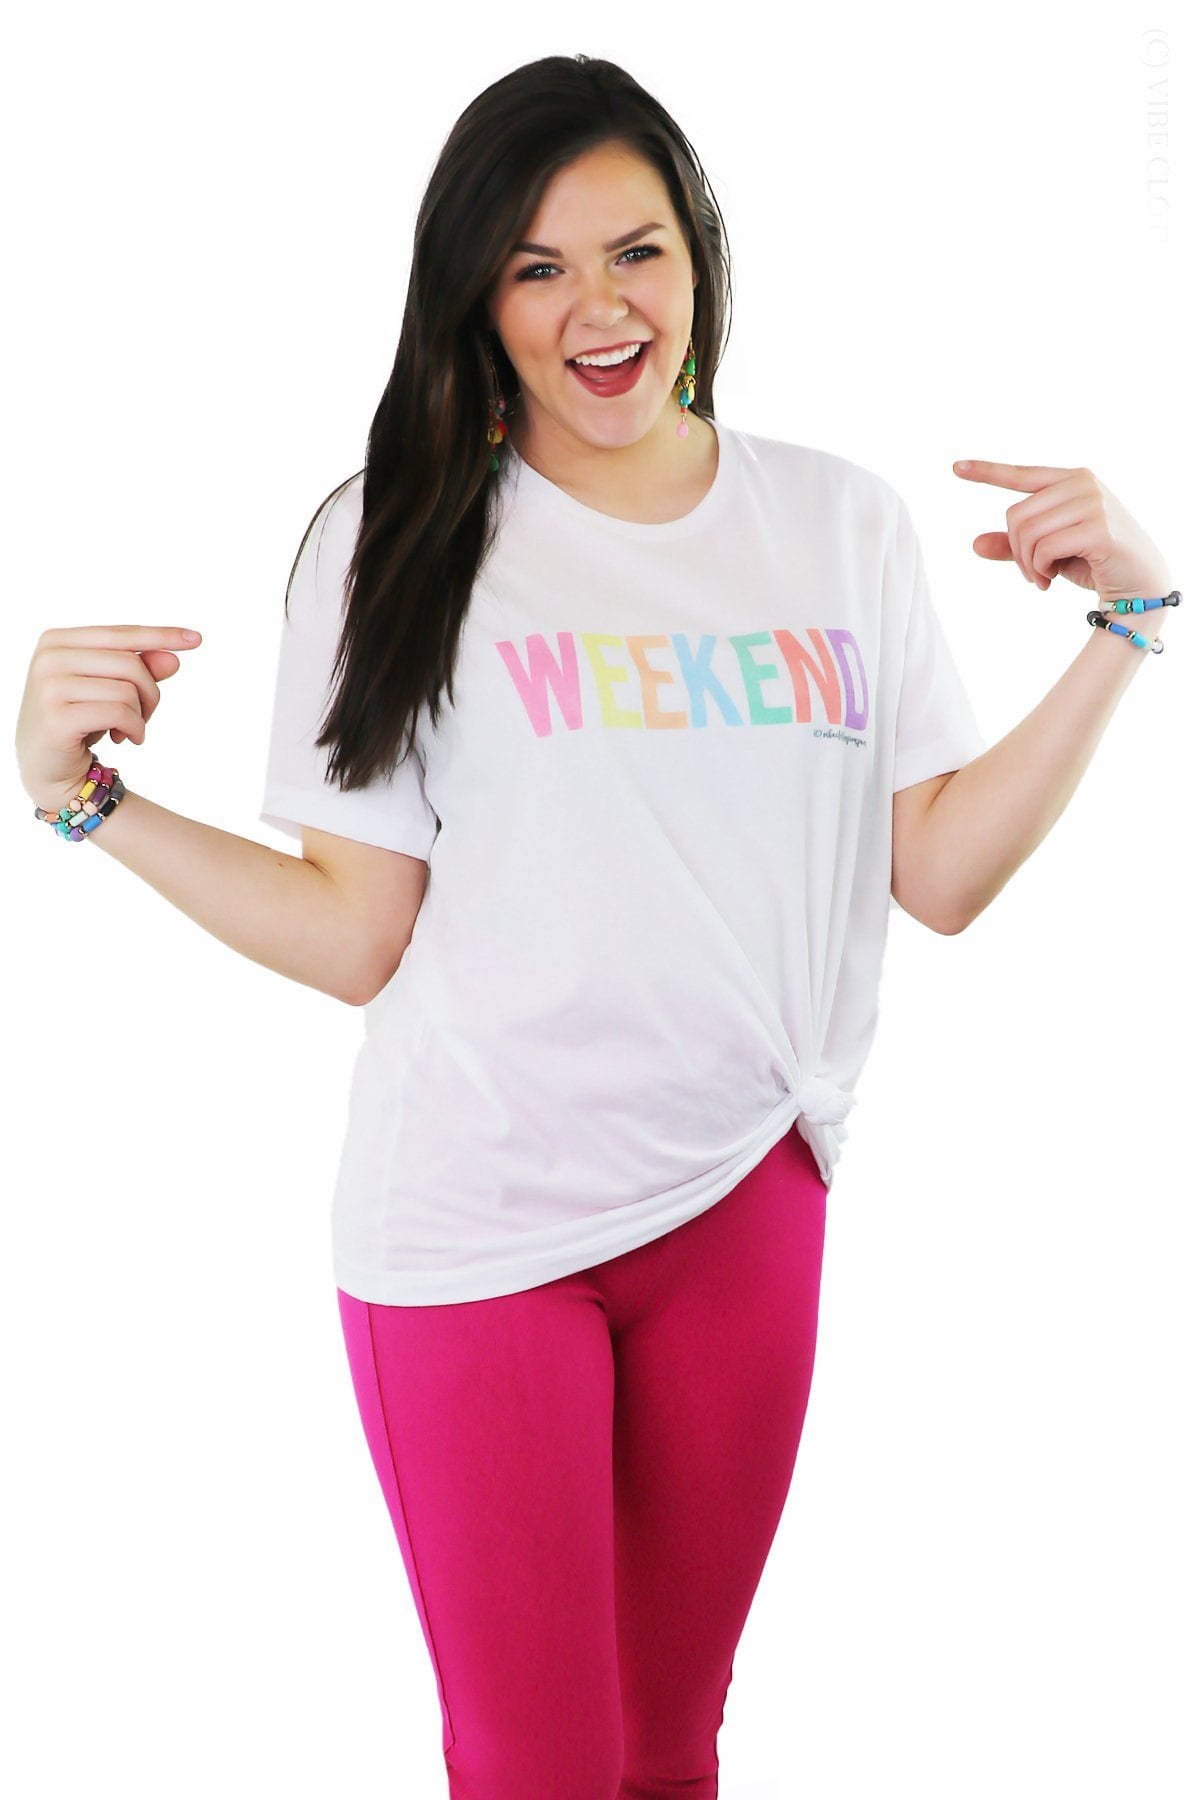 Weekend Graphic Tee graphic tees Mark tee